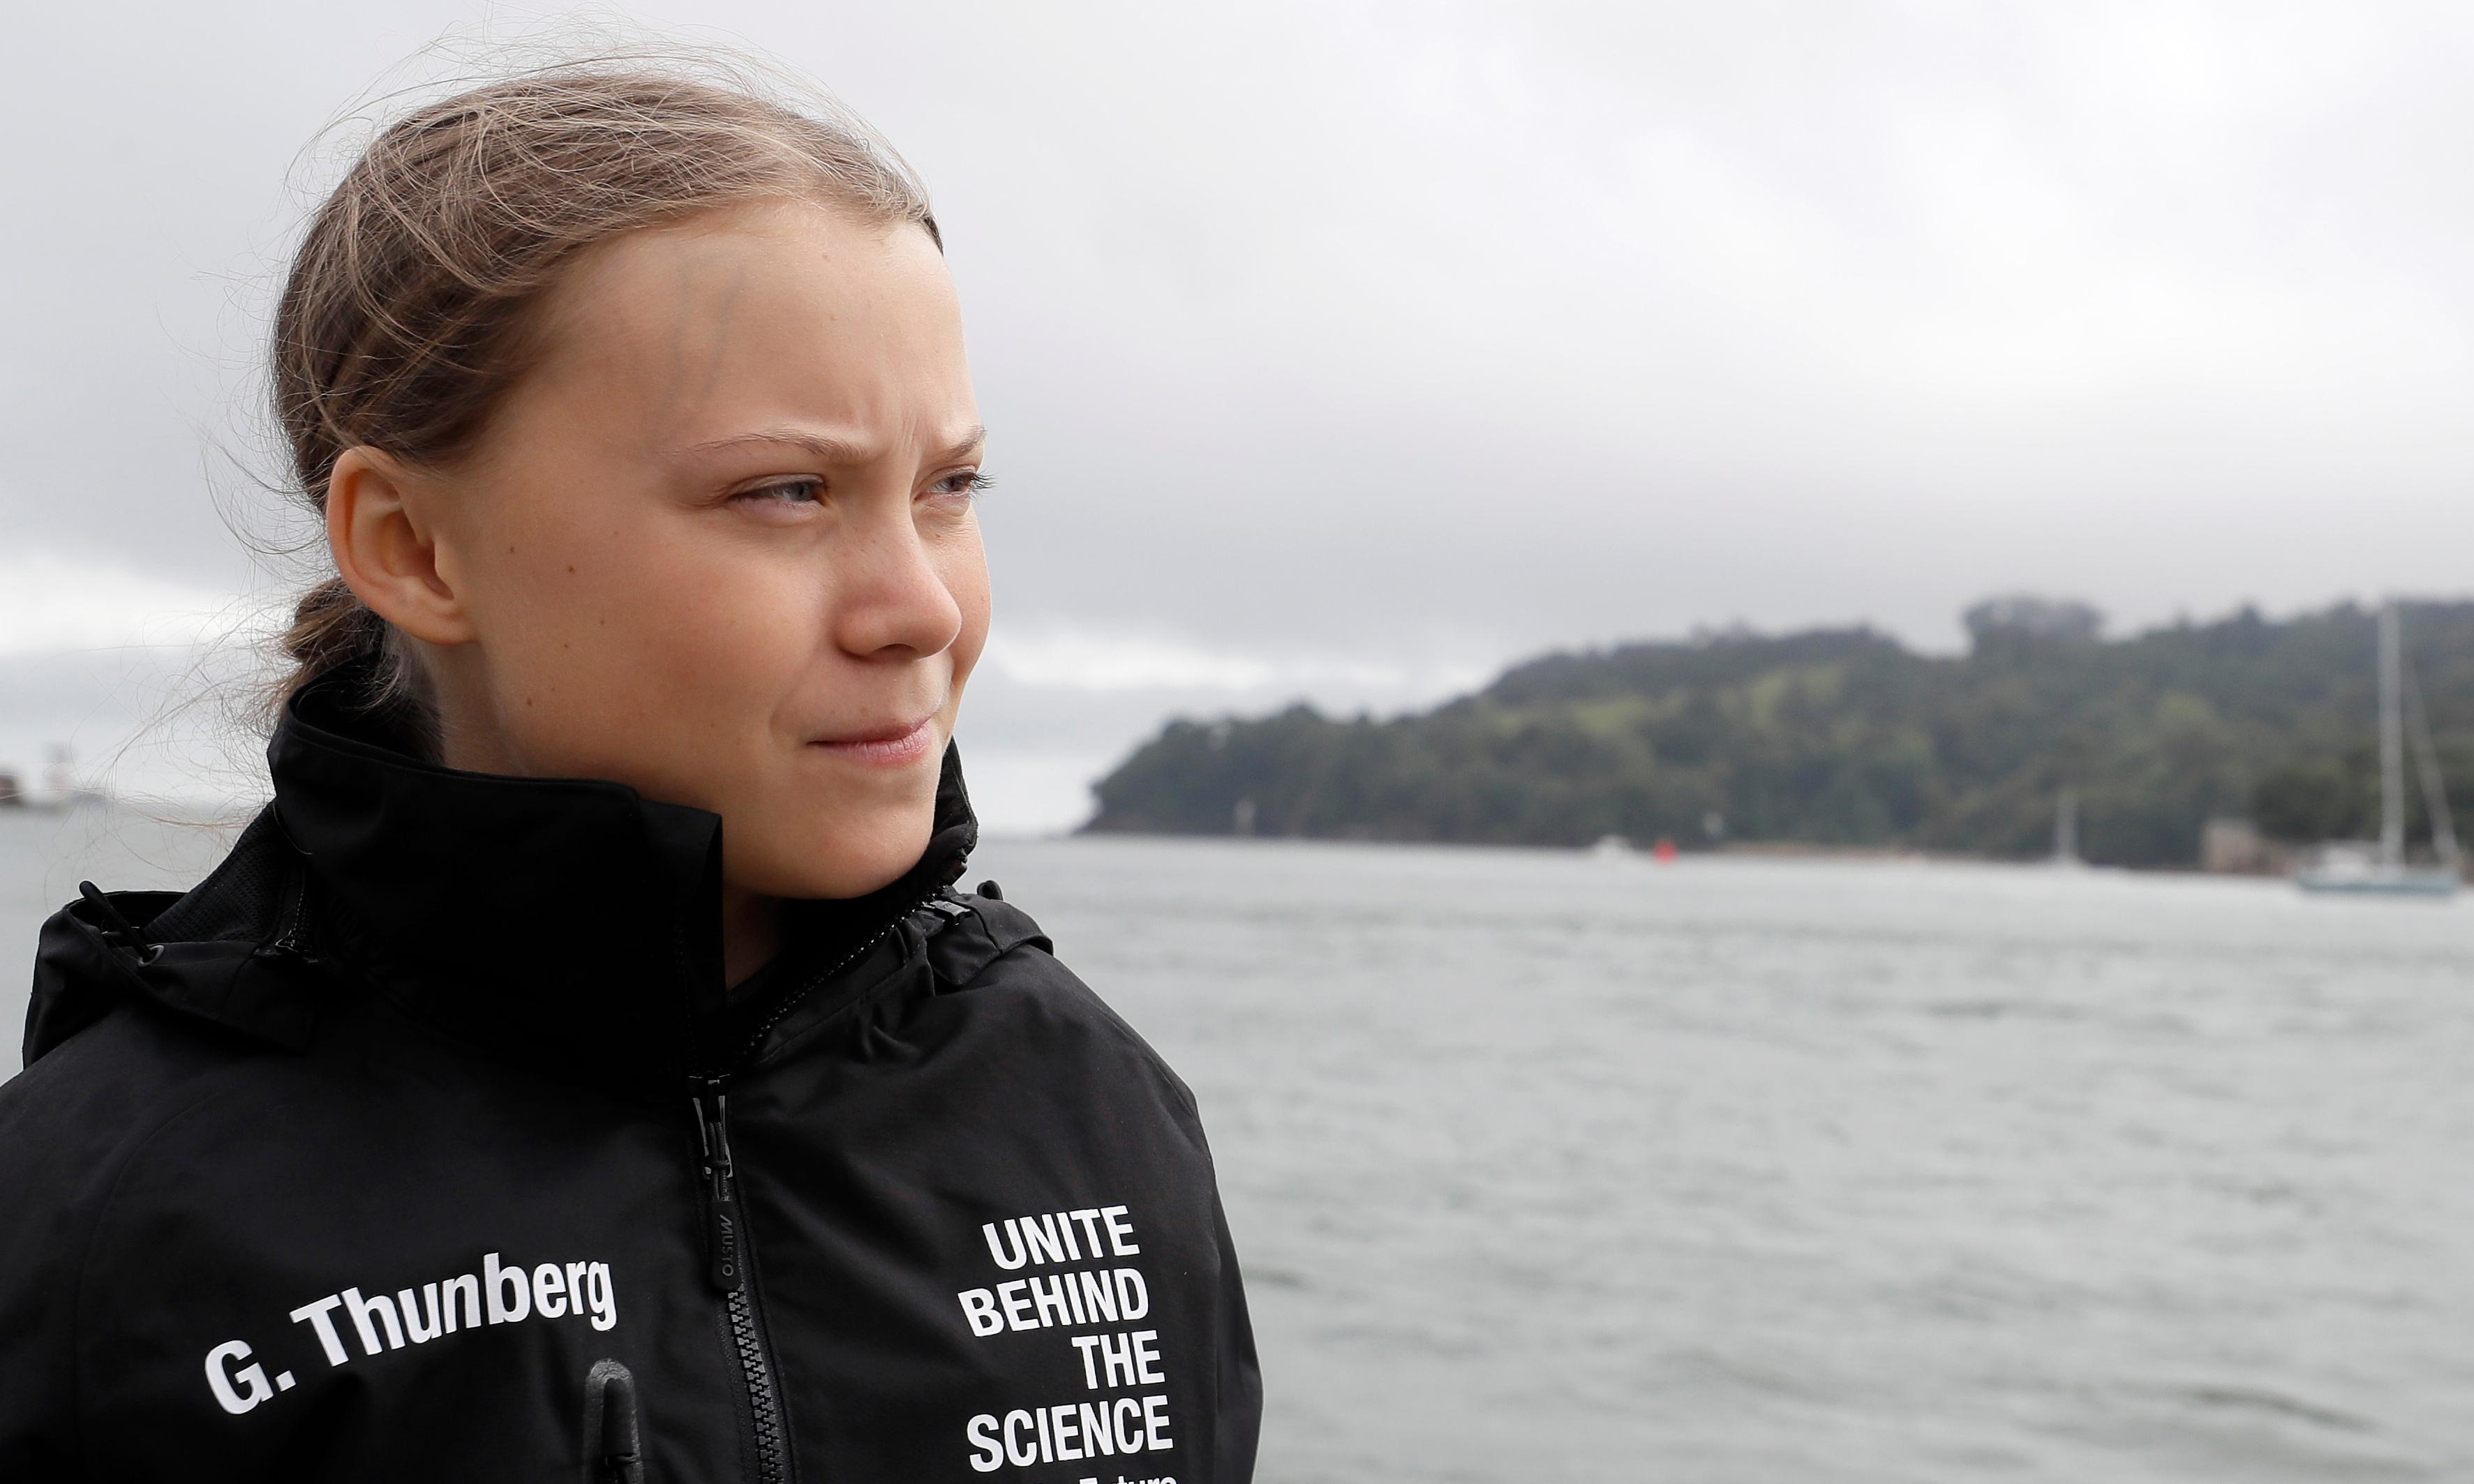 'Greta Thunberg effect' driving growth in carbon offsetting